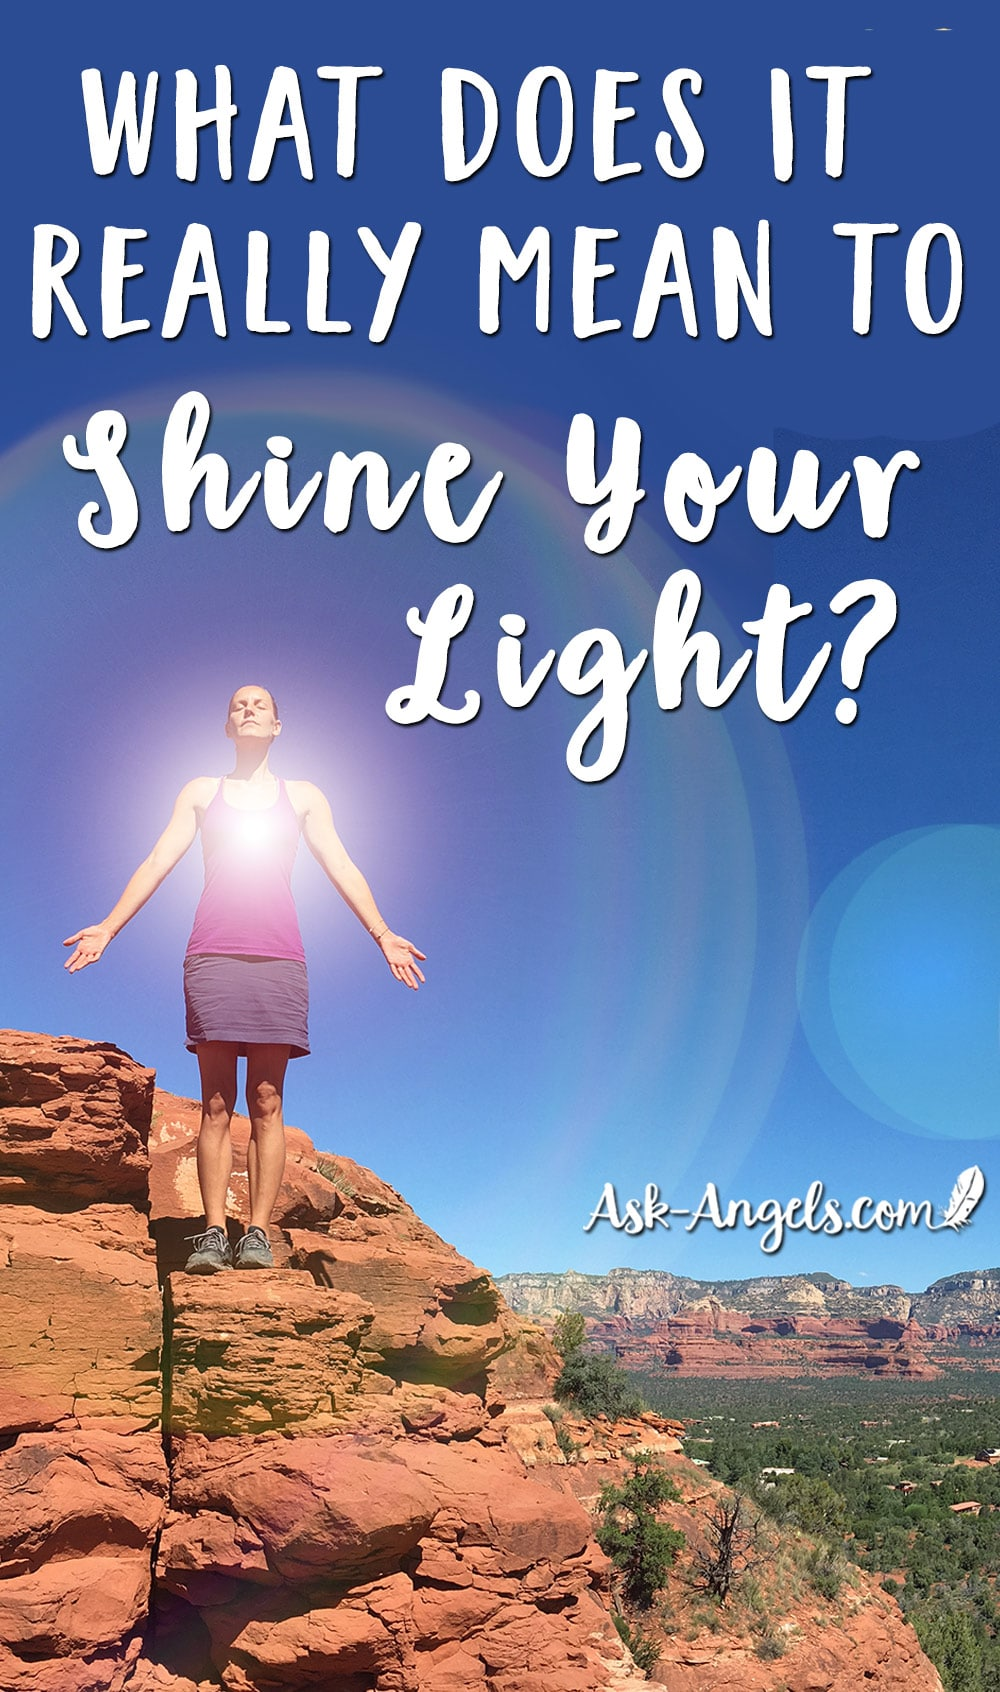 What does it mean to shine your light by melanie beckler and becoming a lighthouse of for What does mean lit